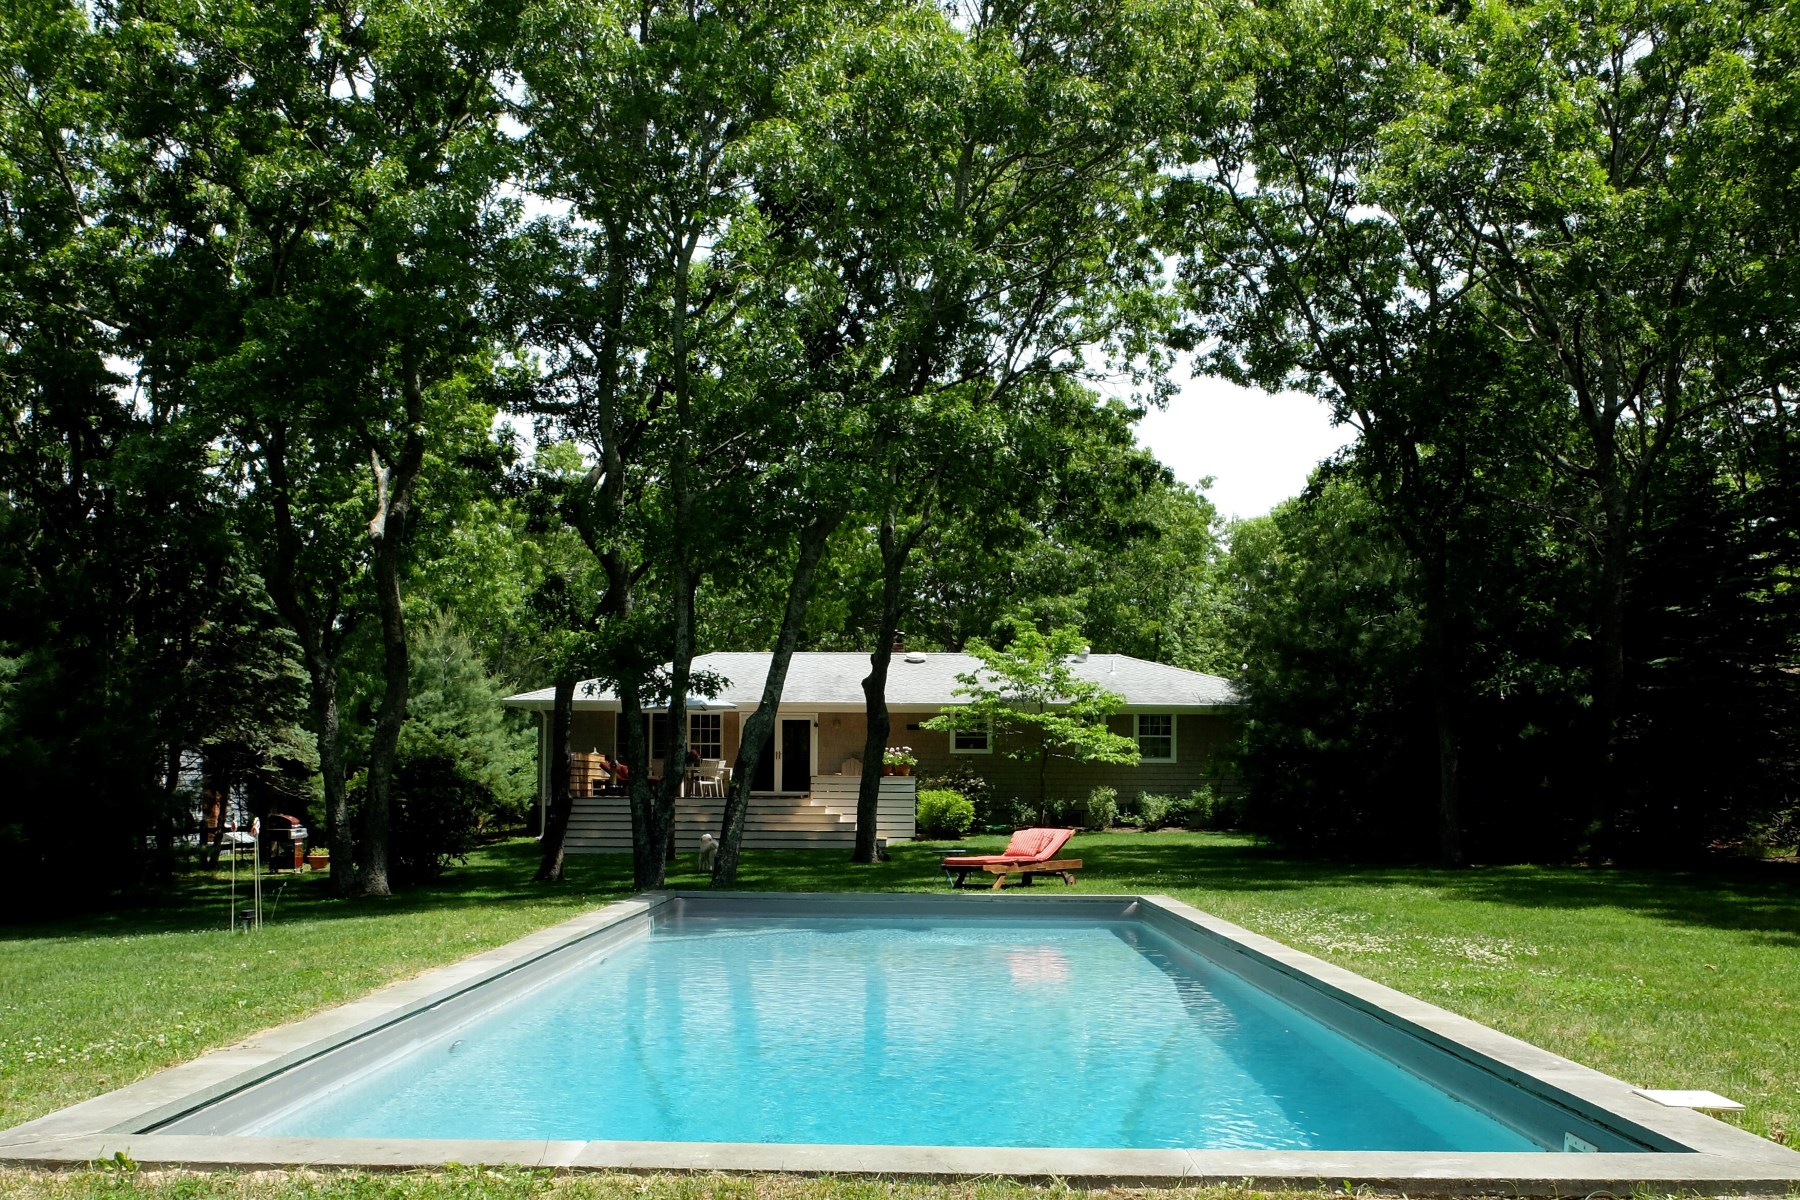 Single Family Home for Rent at Adorable Cottage in Sagaponack Sagaponack, New York 11962 United States